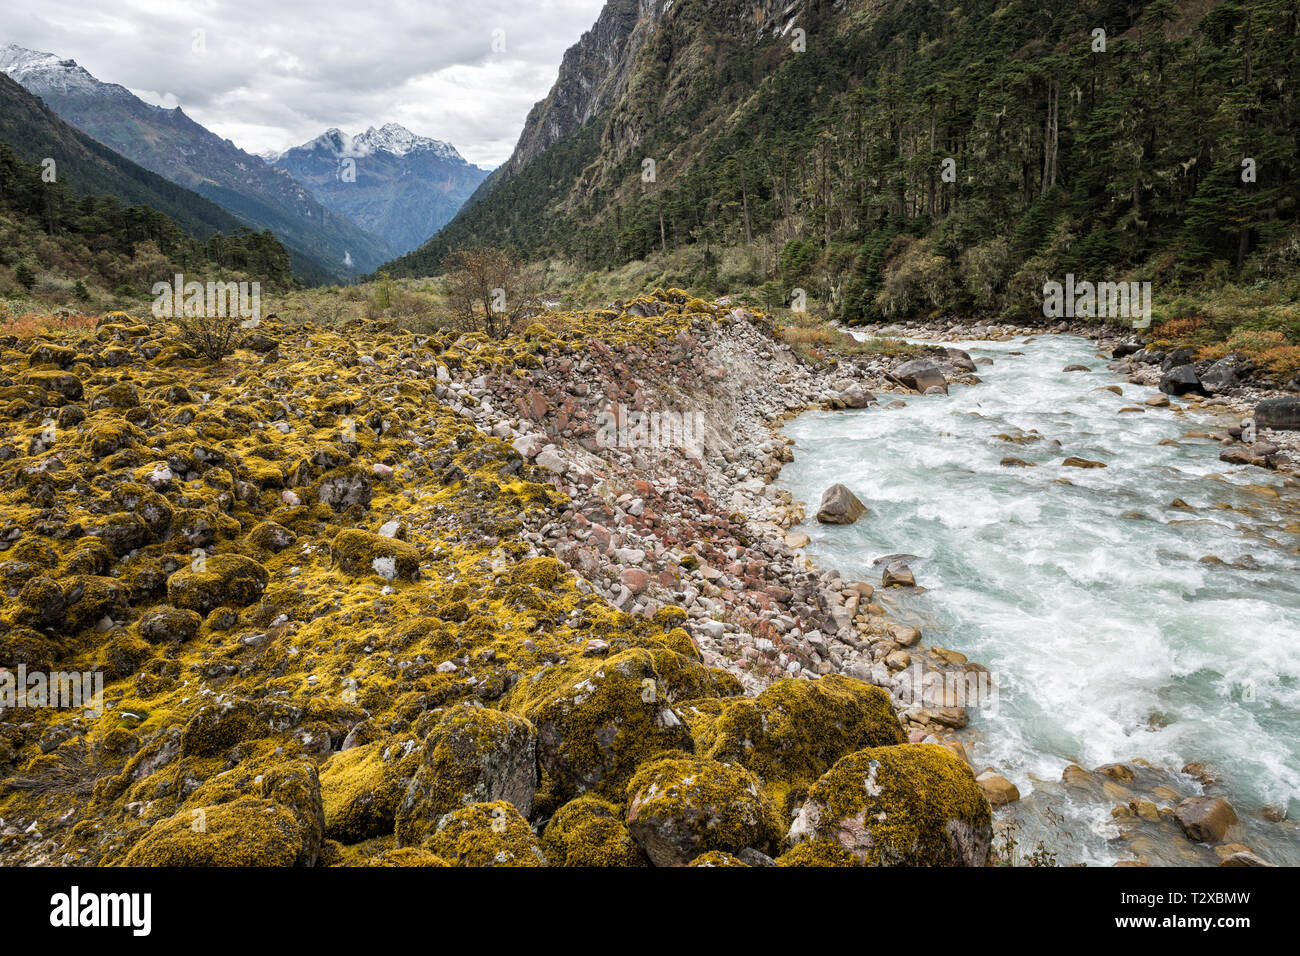 The Tarina valley and its river, Gasa District, Snowman Trek, Bhutan - Stock Image